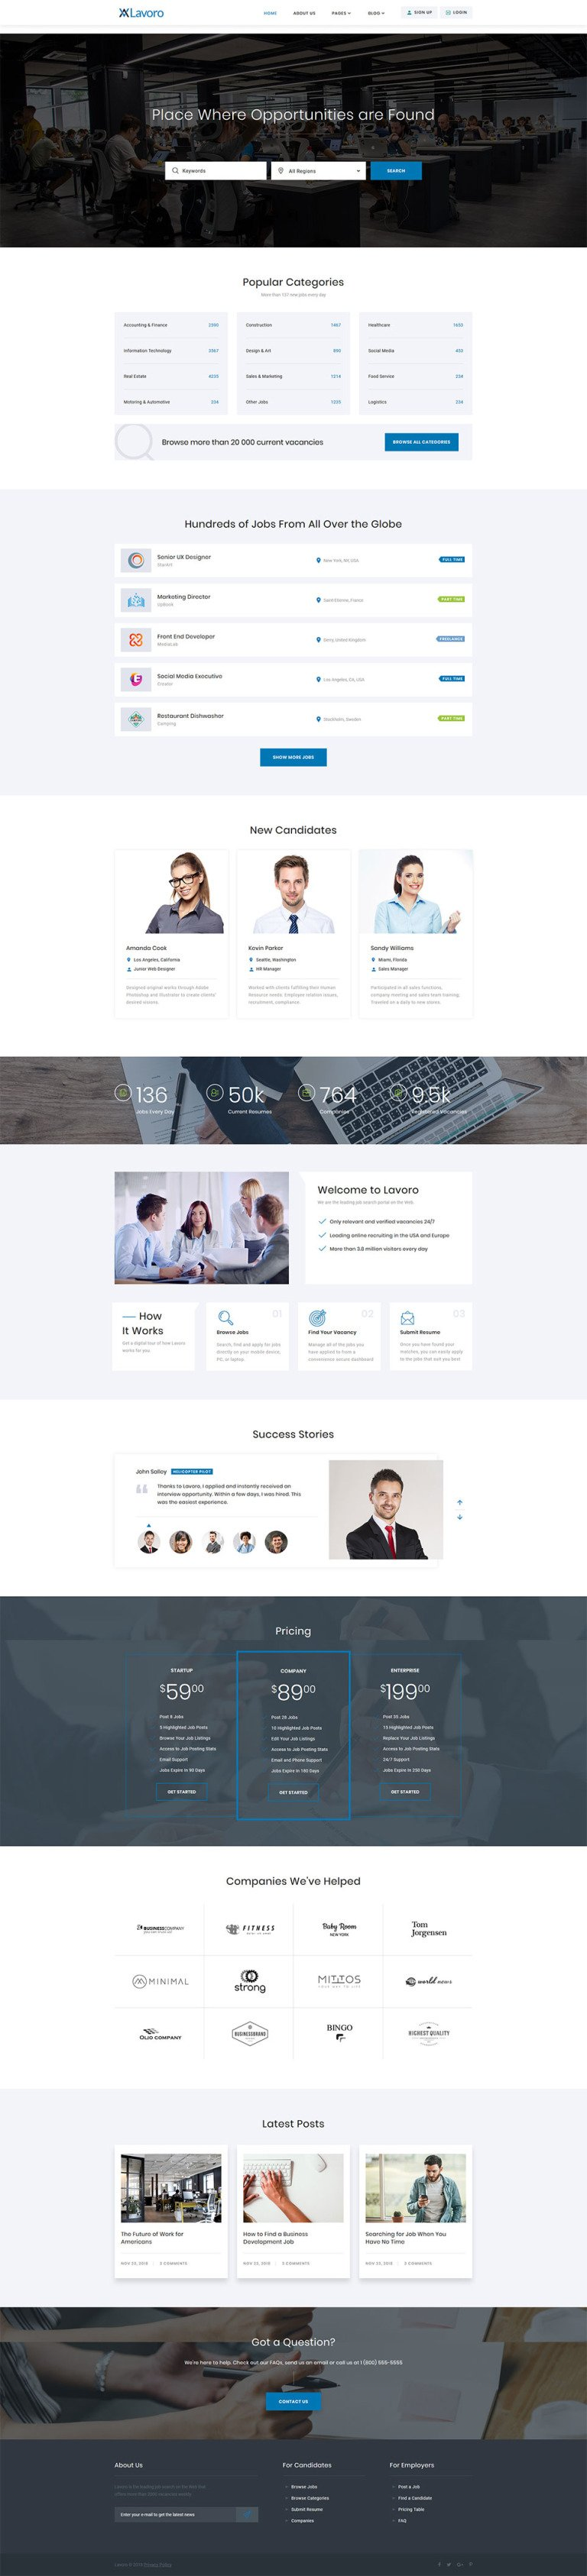 Online Jobsite Website Template New Screenshots BIG